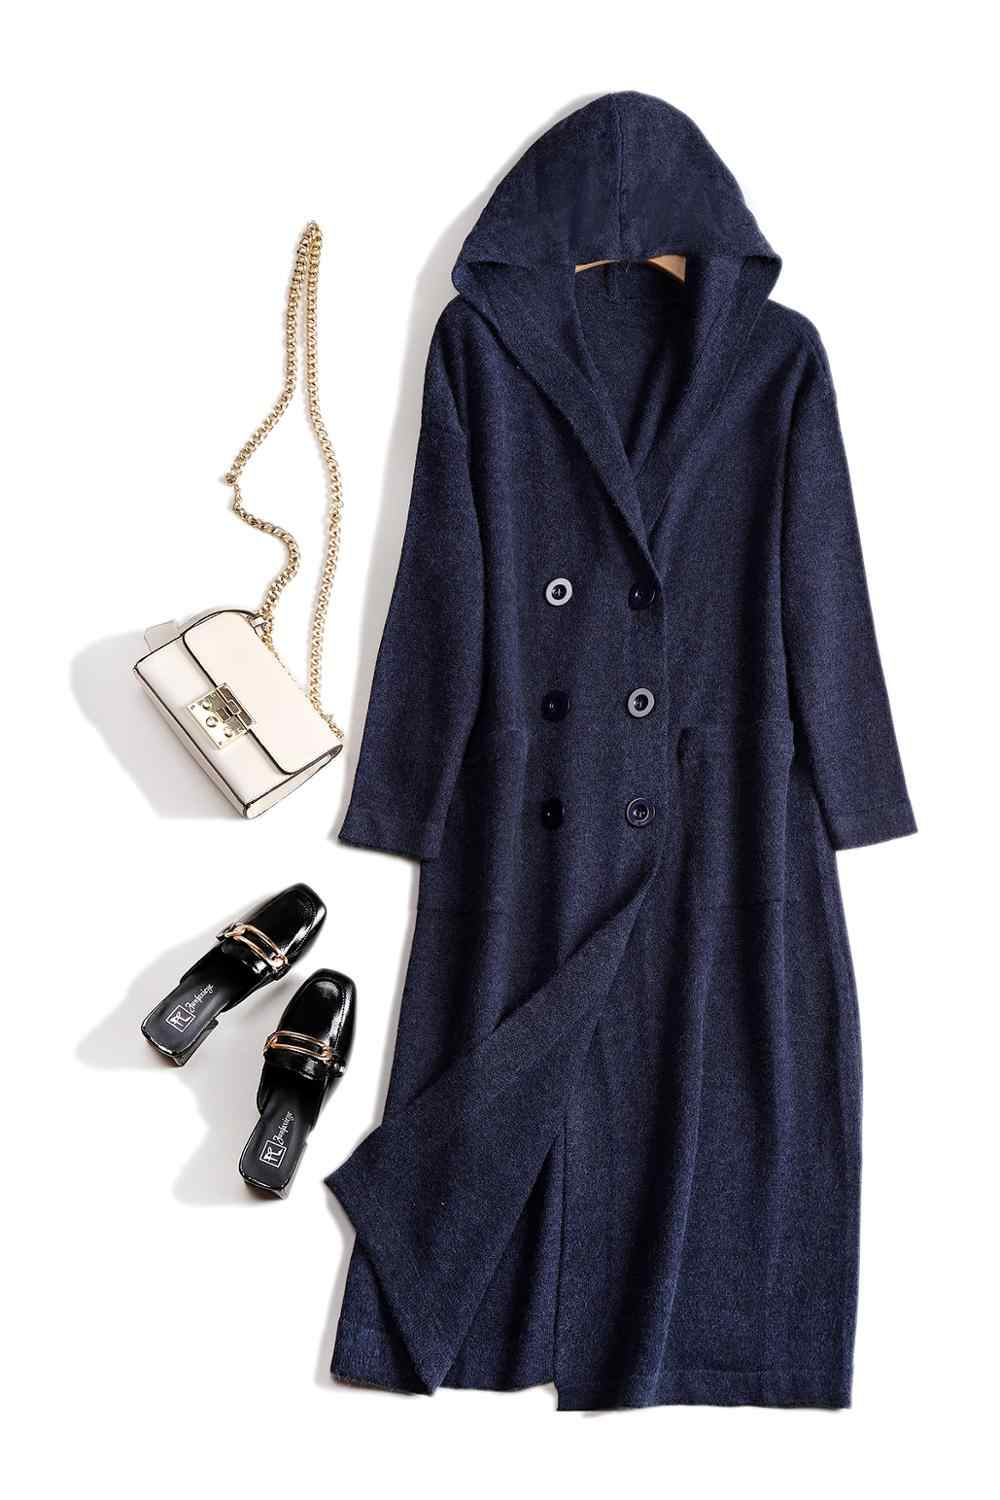 2019 Long Coat Knitted Wool Blend Hooded Warm Knitted Sweater Women Korean Cardigans Thick Loose Autumn Winter Cardigans Female